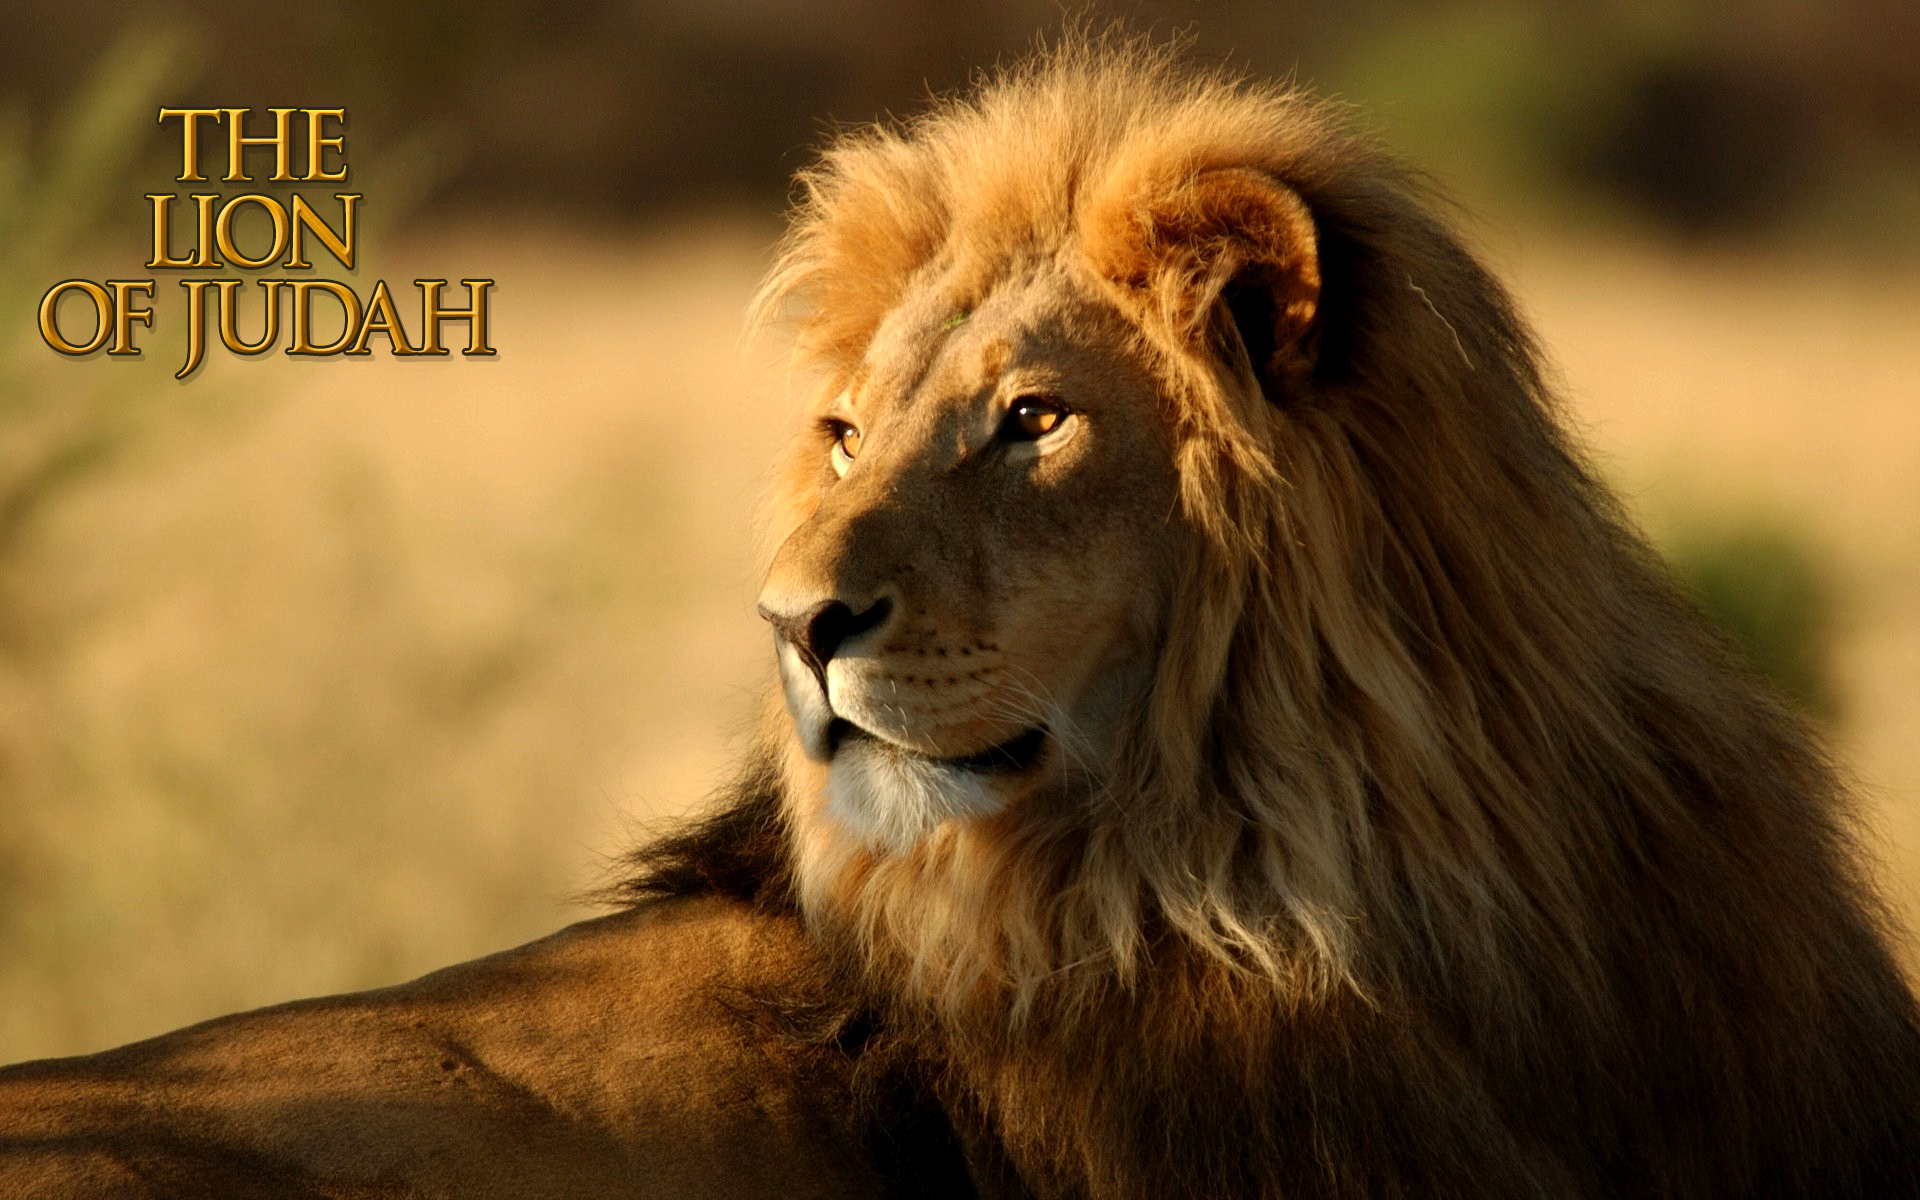 Lion-Of-Judah-HD-Wallpaper